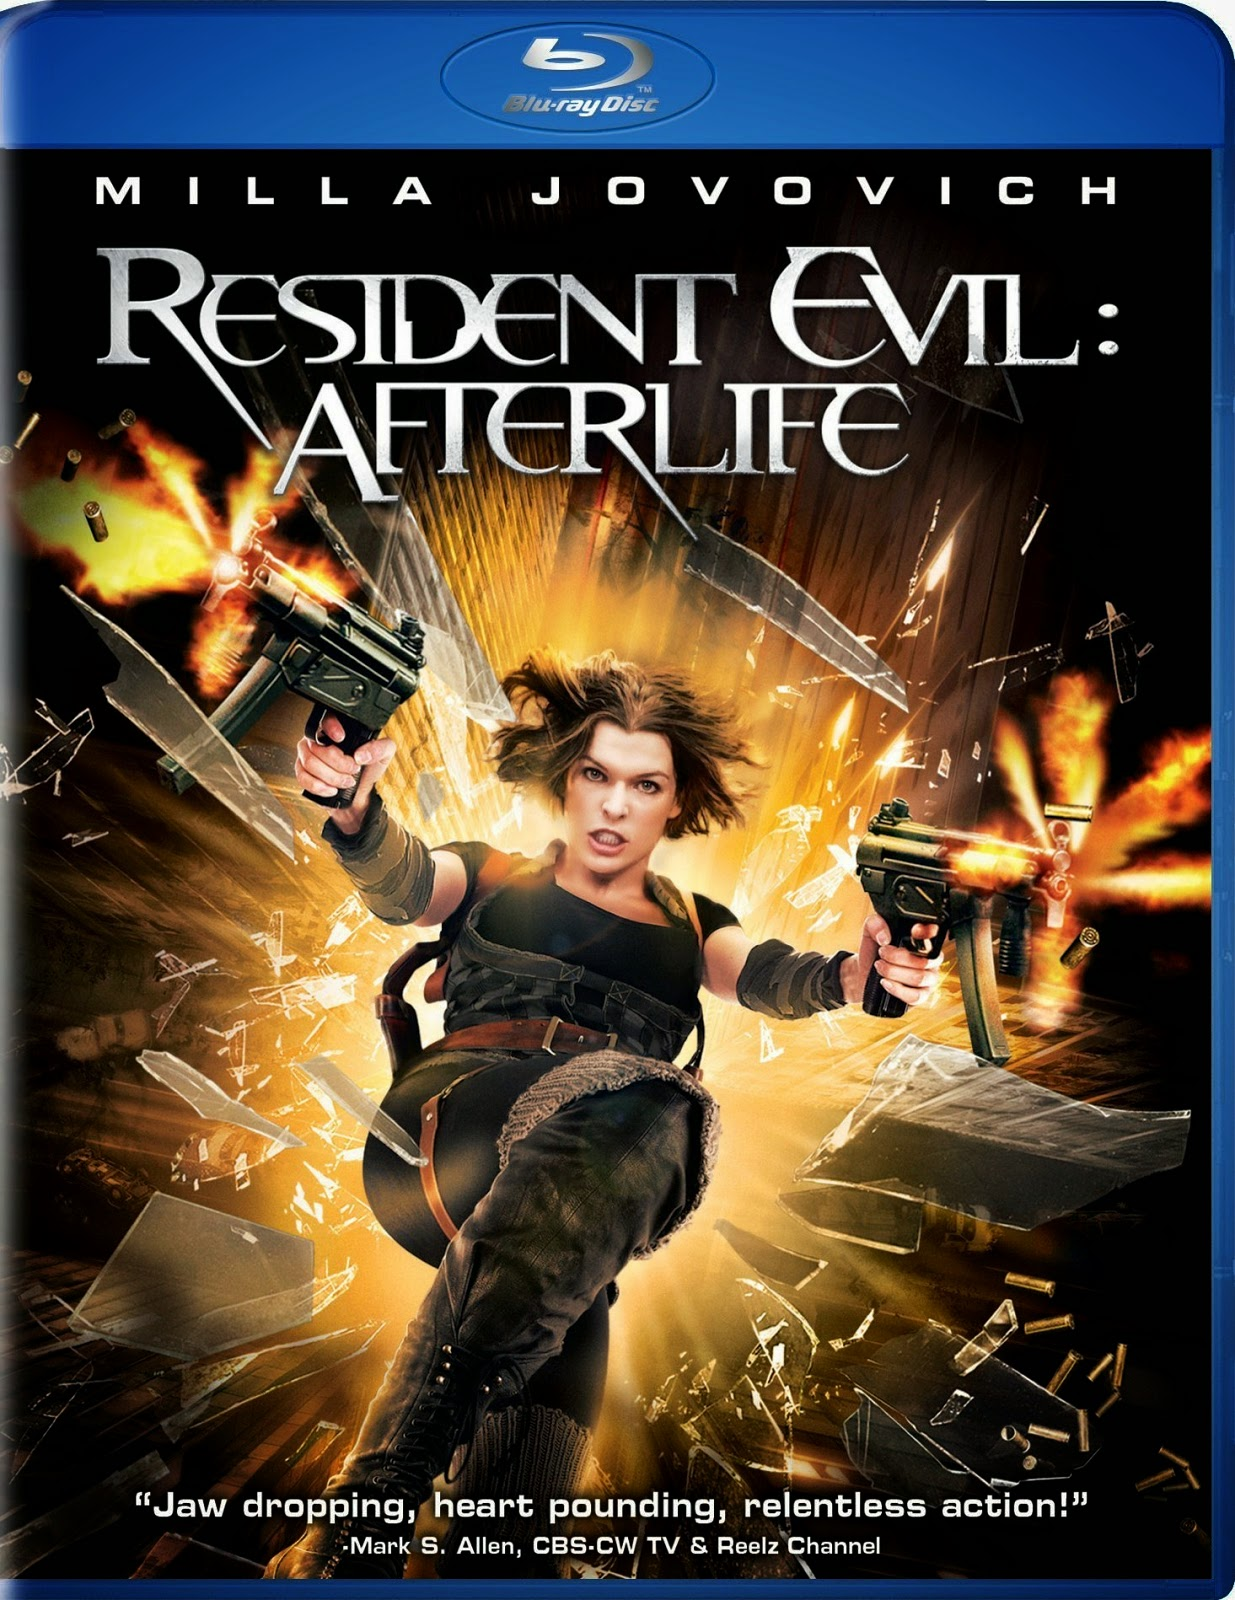 Resident Evil Afterlife (2010) ผีชีวะ4